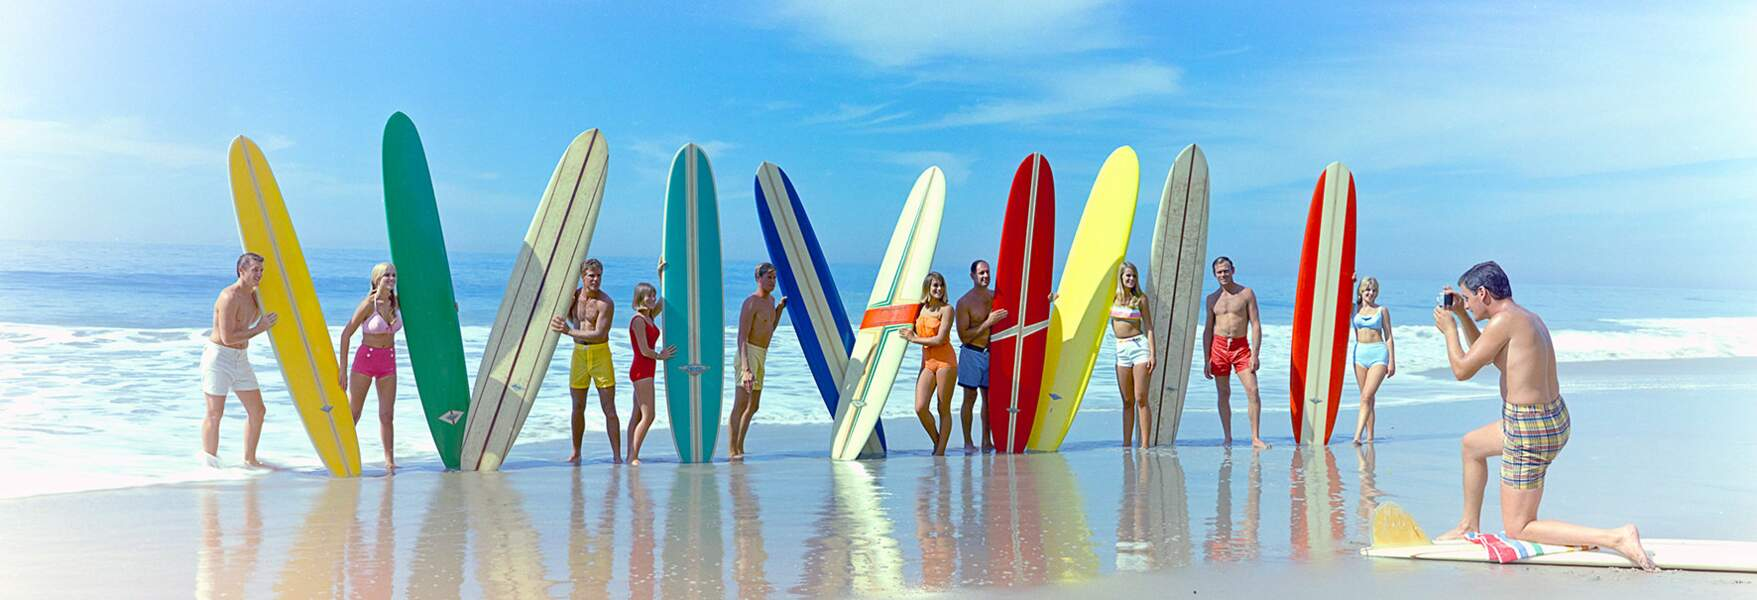 Surfers And surfboards, 1966